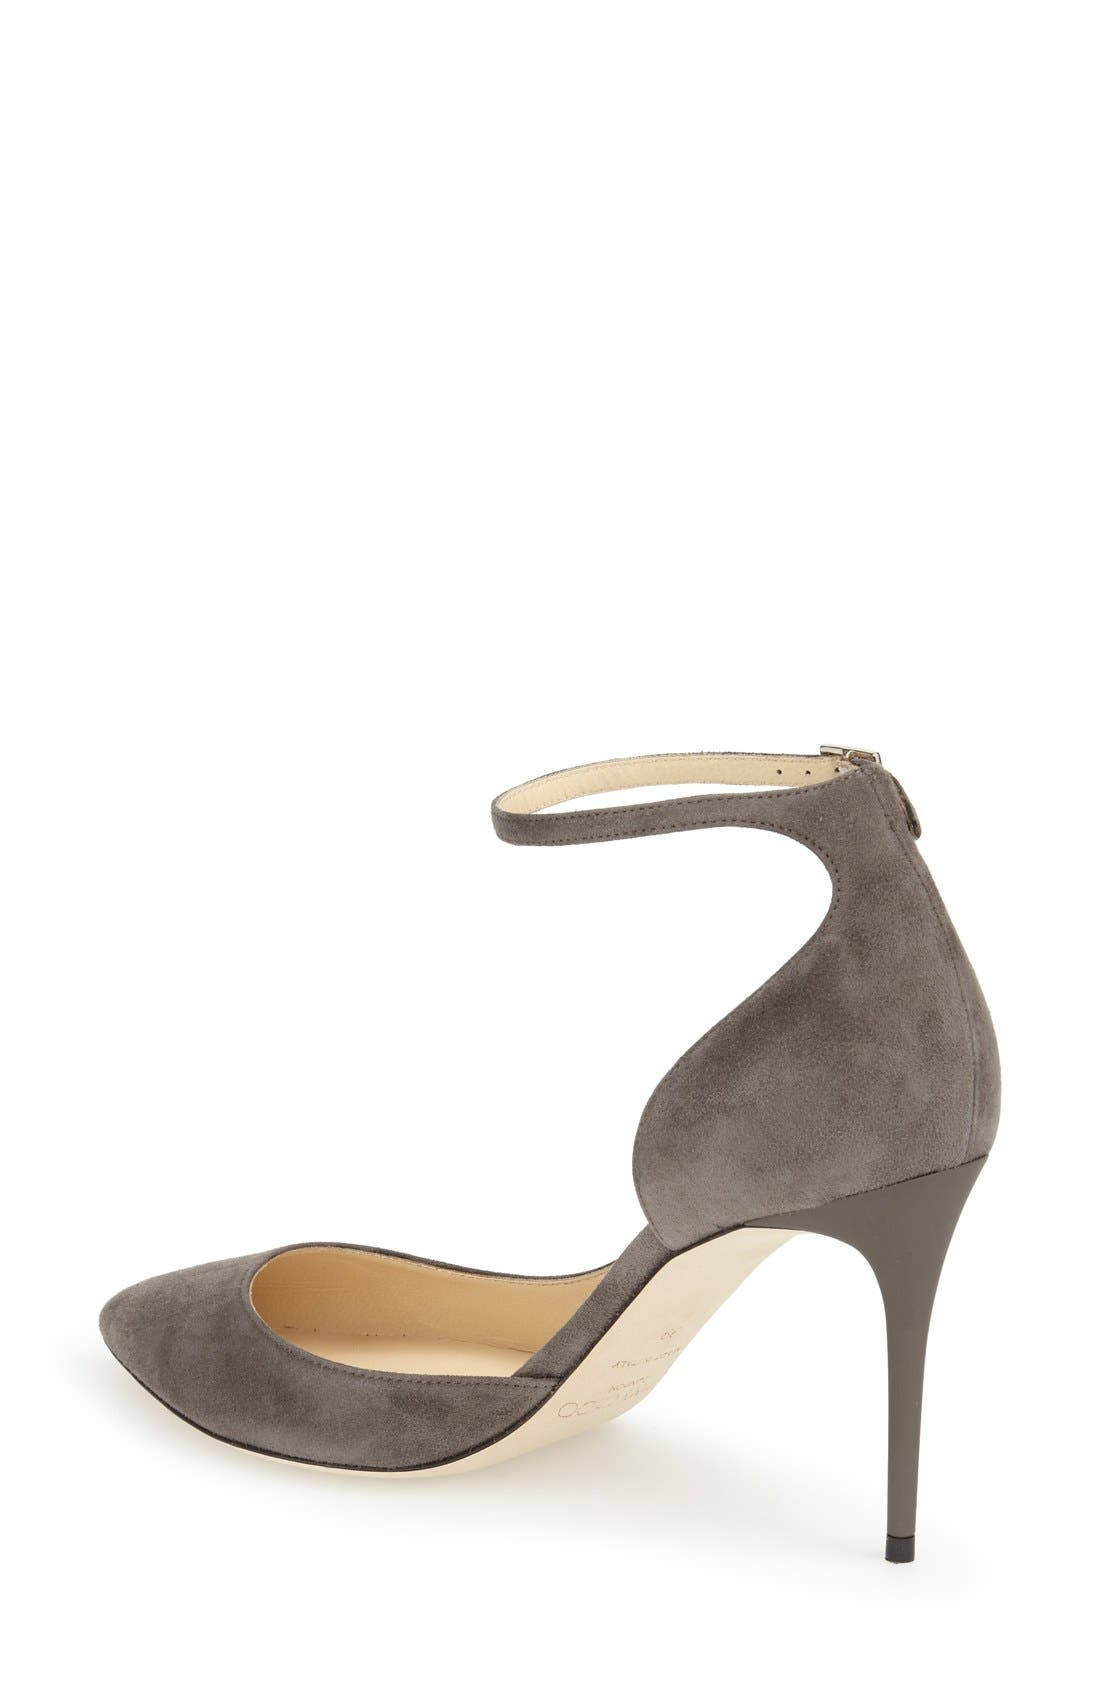 'Lucy' Half d'Orsay Pointy Toe Pump,                             Alternate thumbnail 11, color,